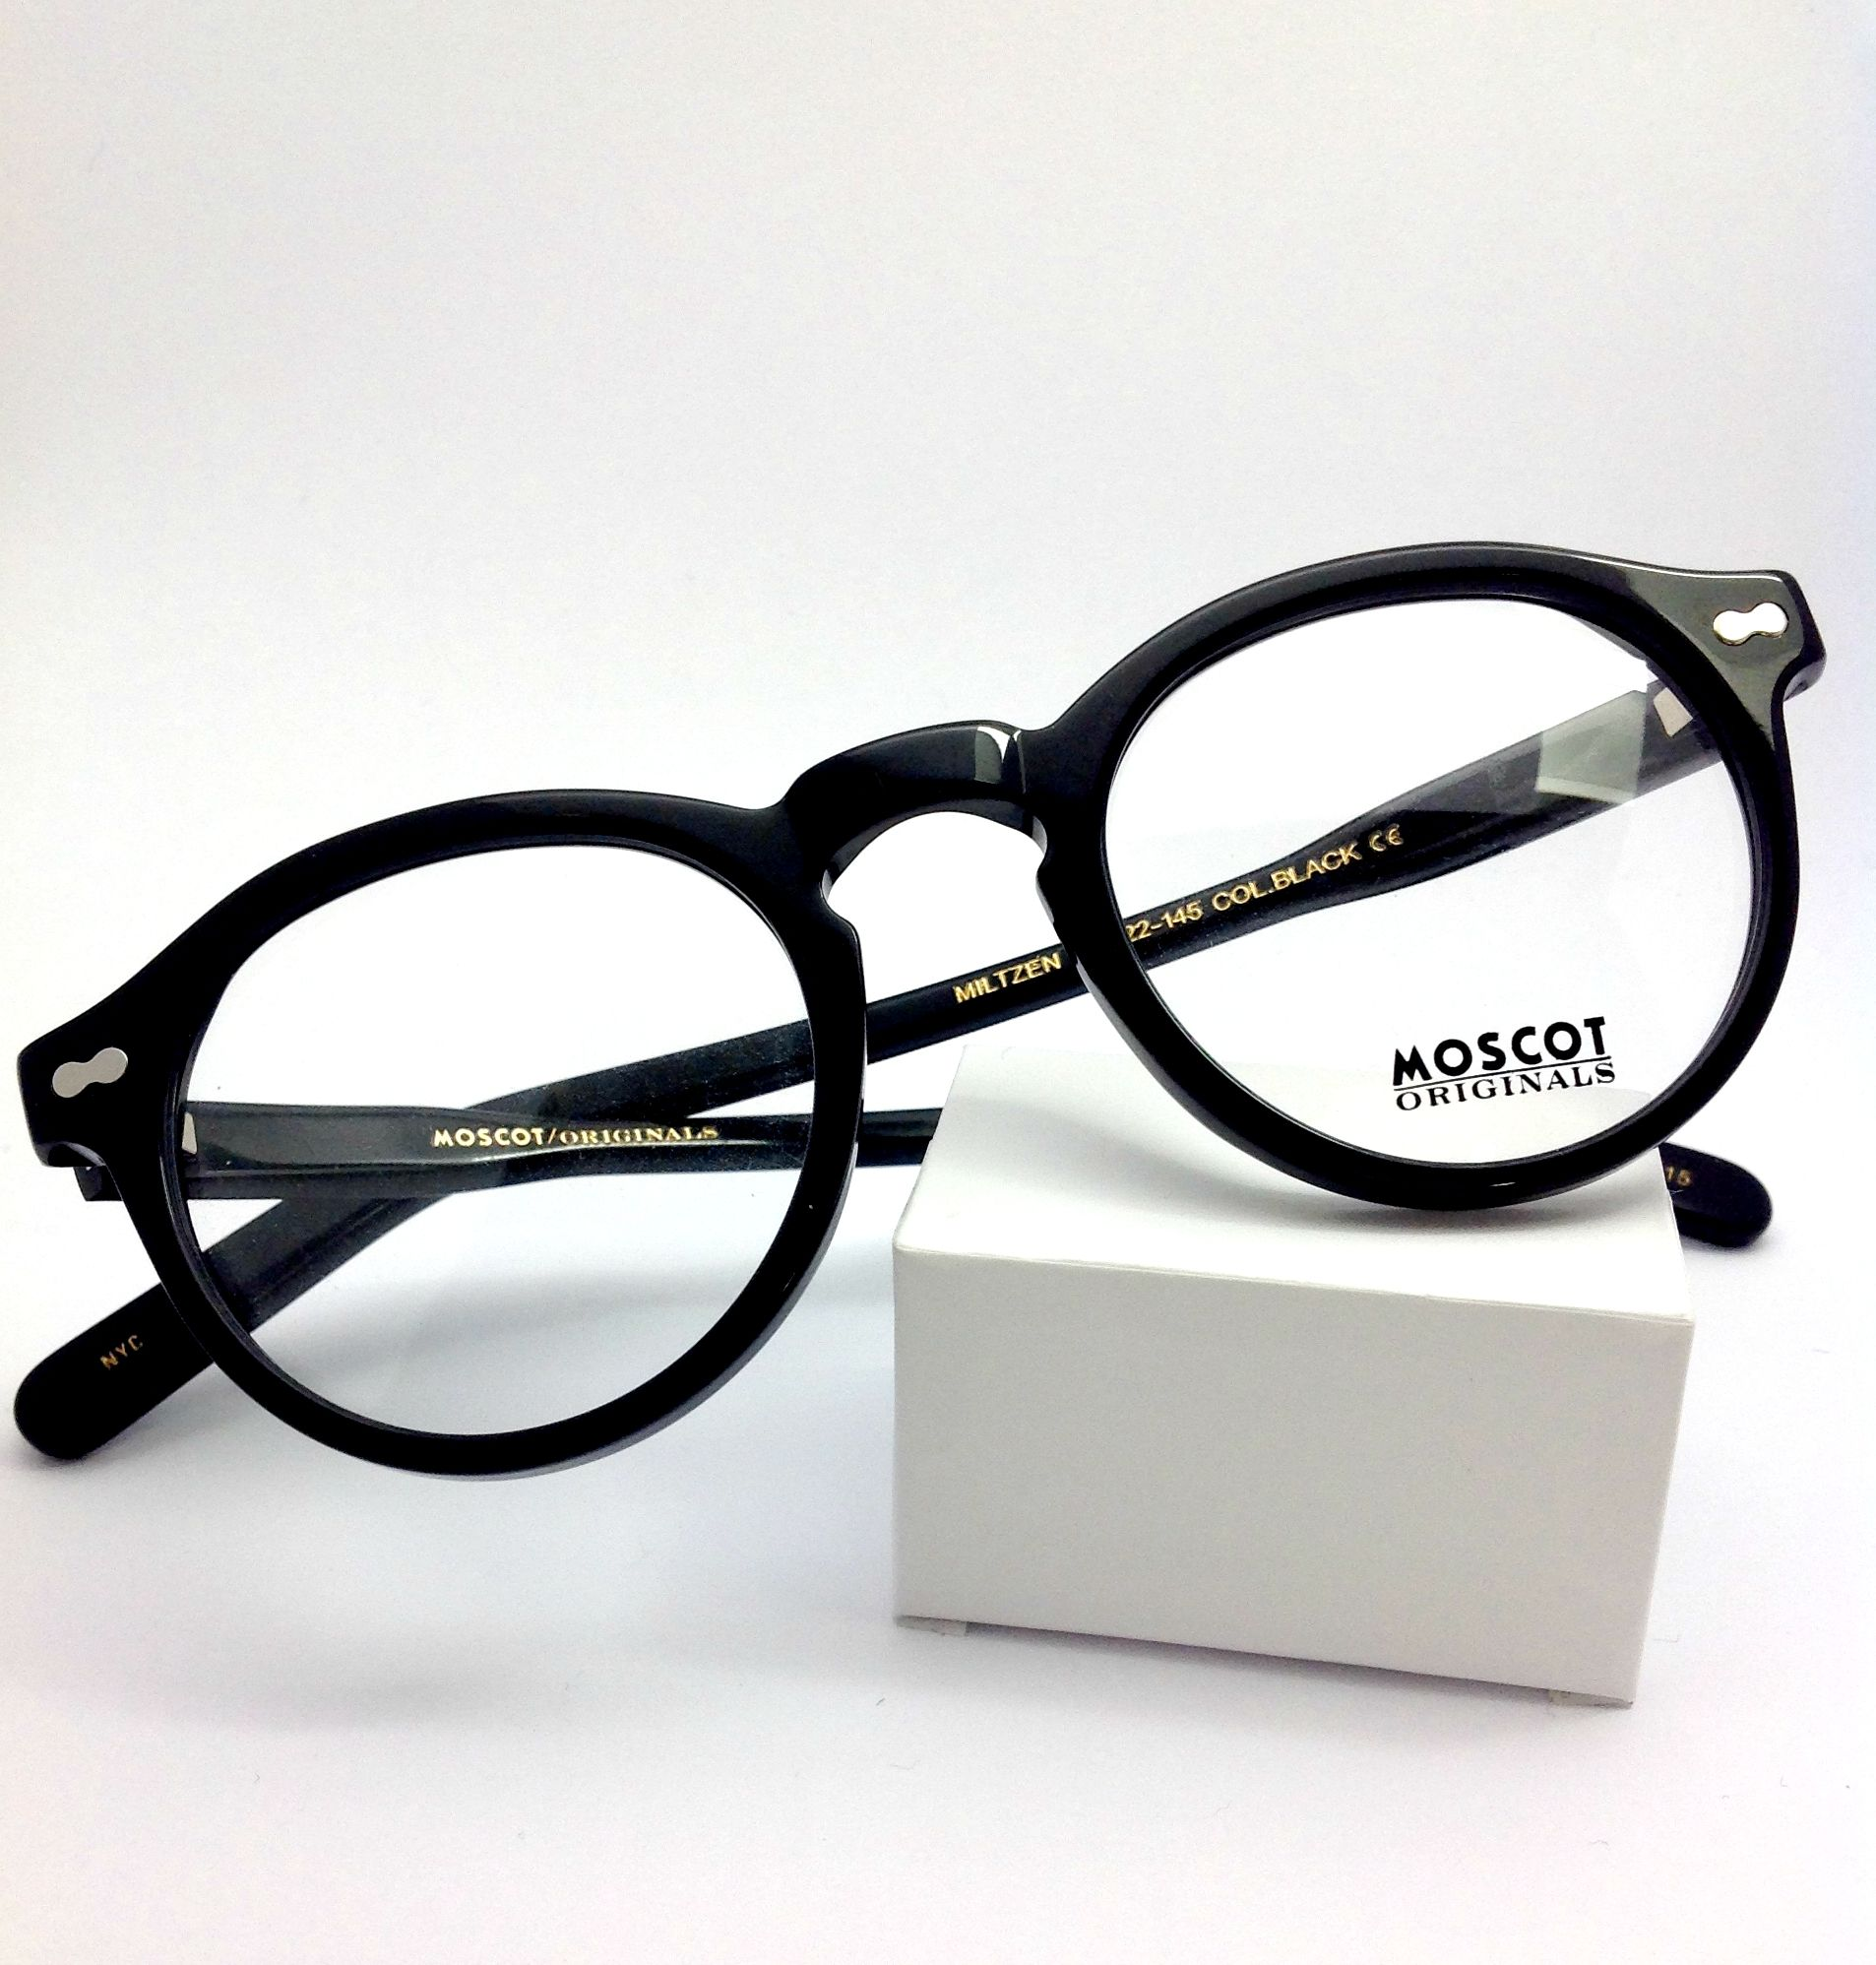 go a bit different with this strong moscot original